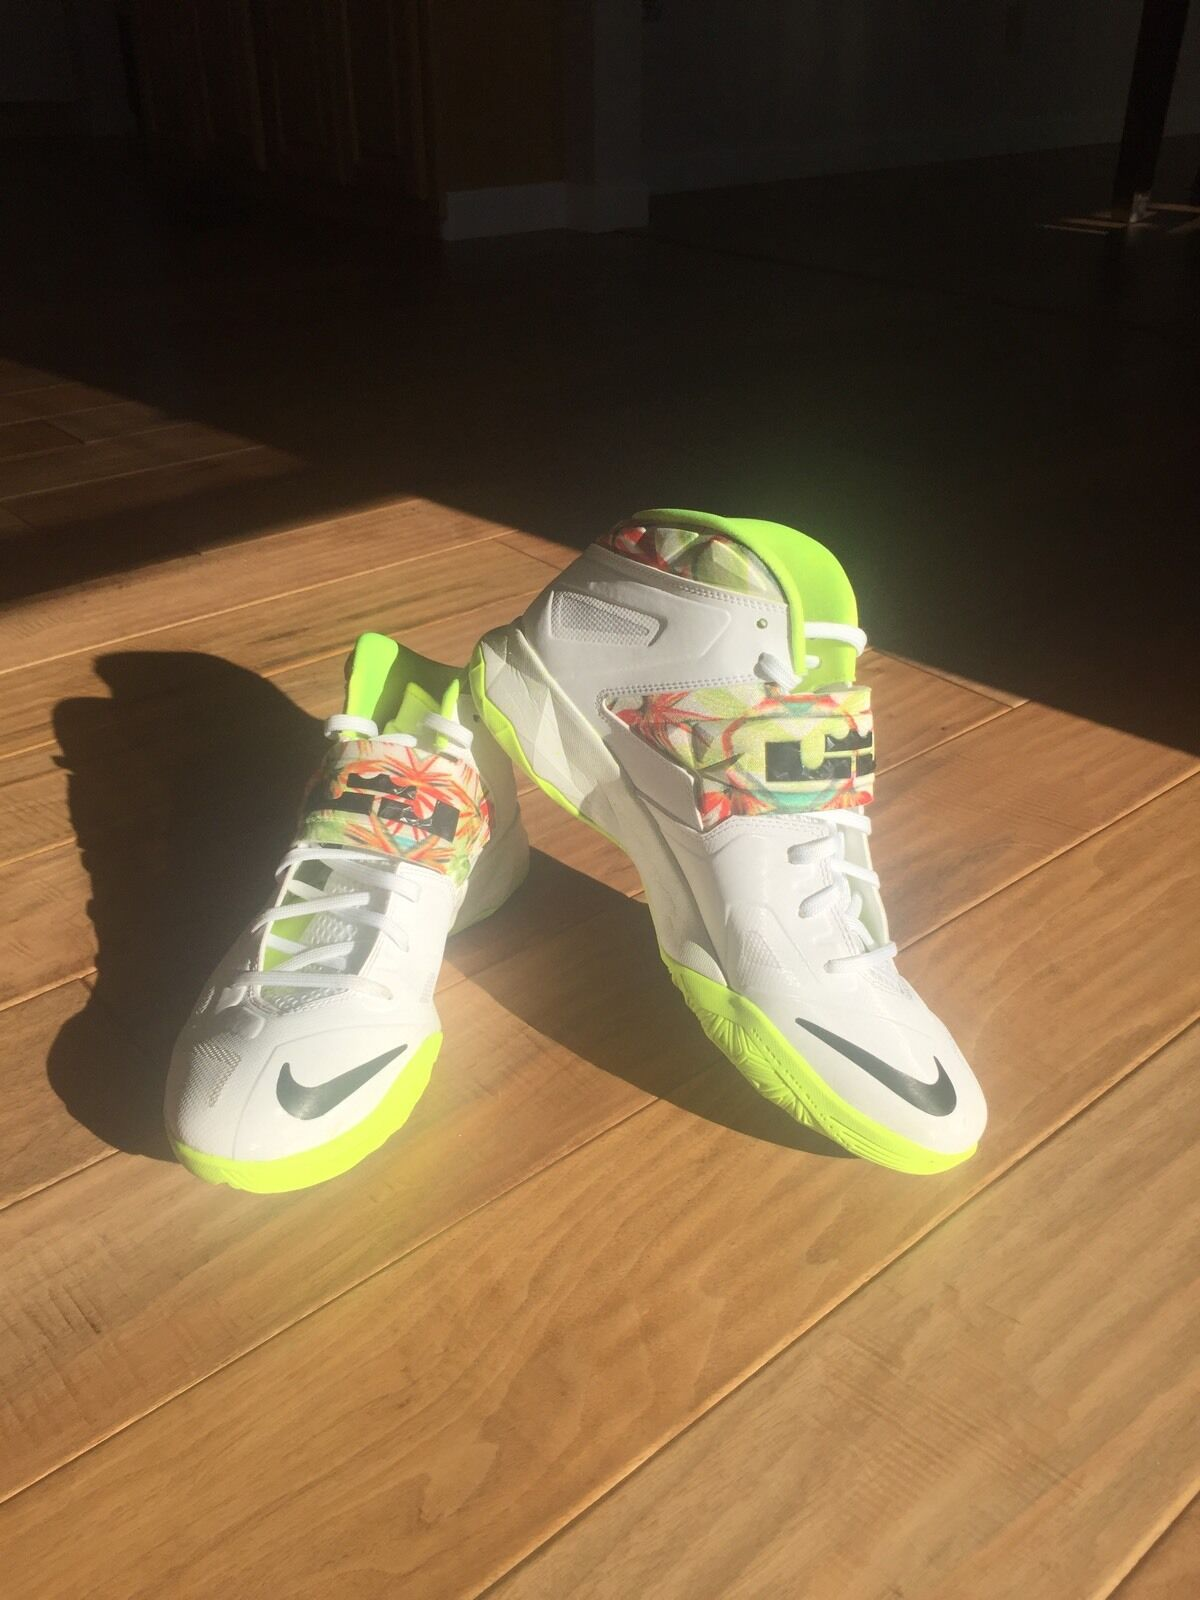 Nike Lebron Soldier 7 Size 11.5